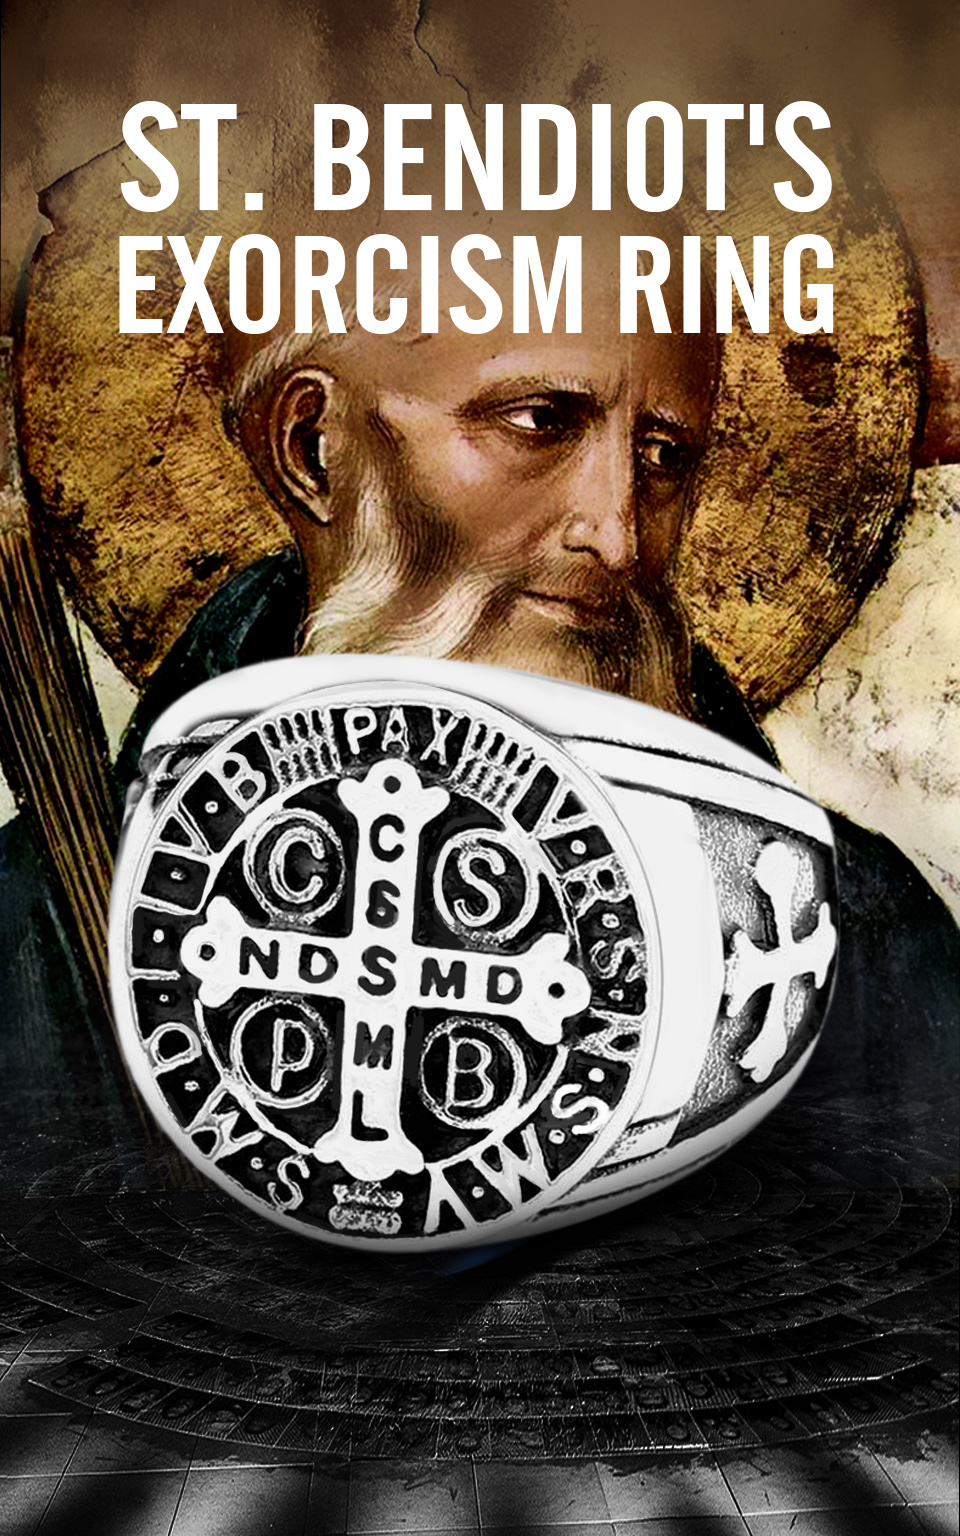 H22c5b37ff284420aab401faca6a771277 - St. Benedict's Exorcism Ring